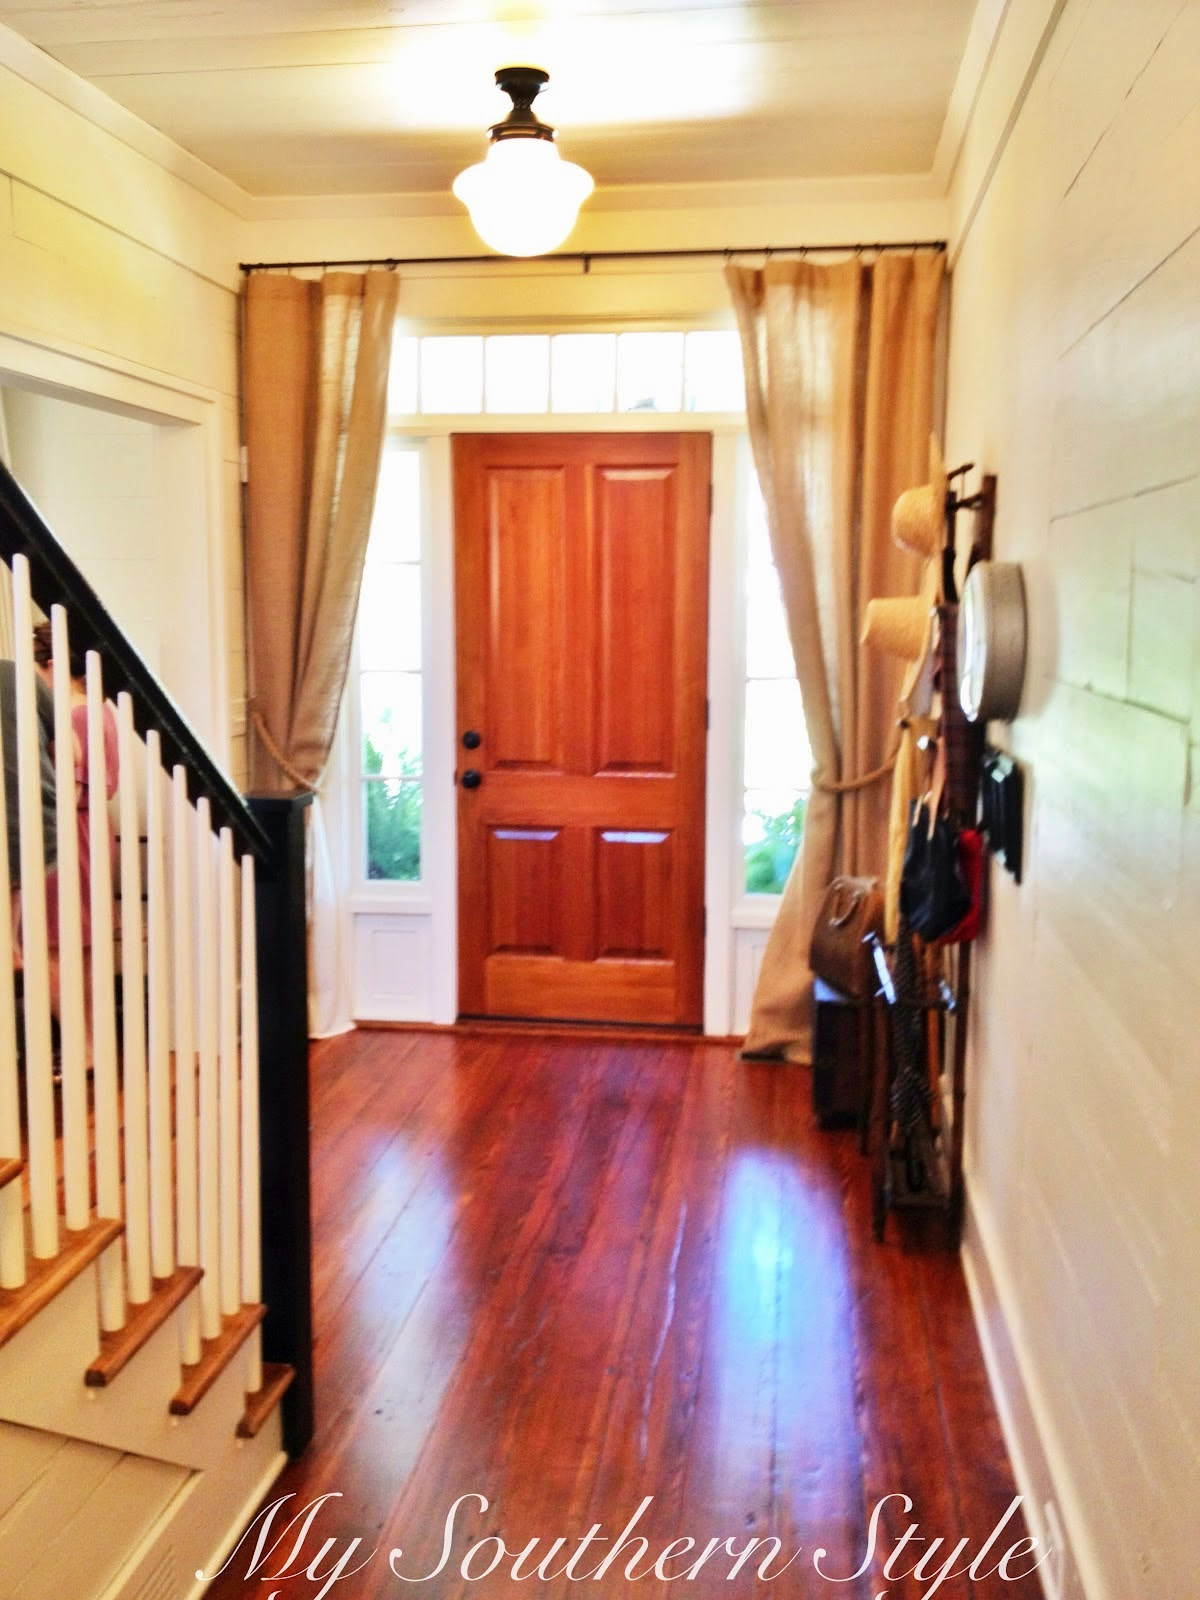 Is a staircase facing the front door bad feng shui the for Feng shui bedroom door facing stairs